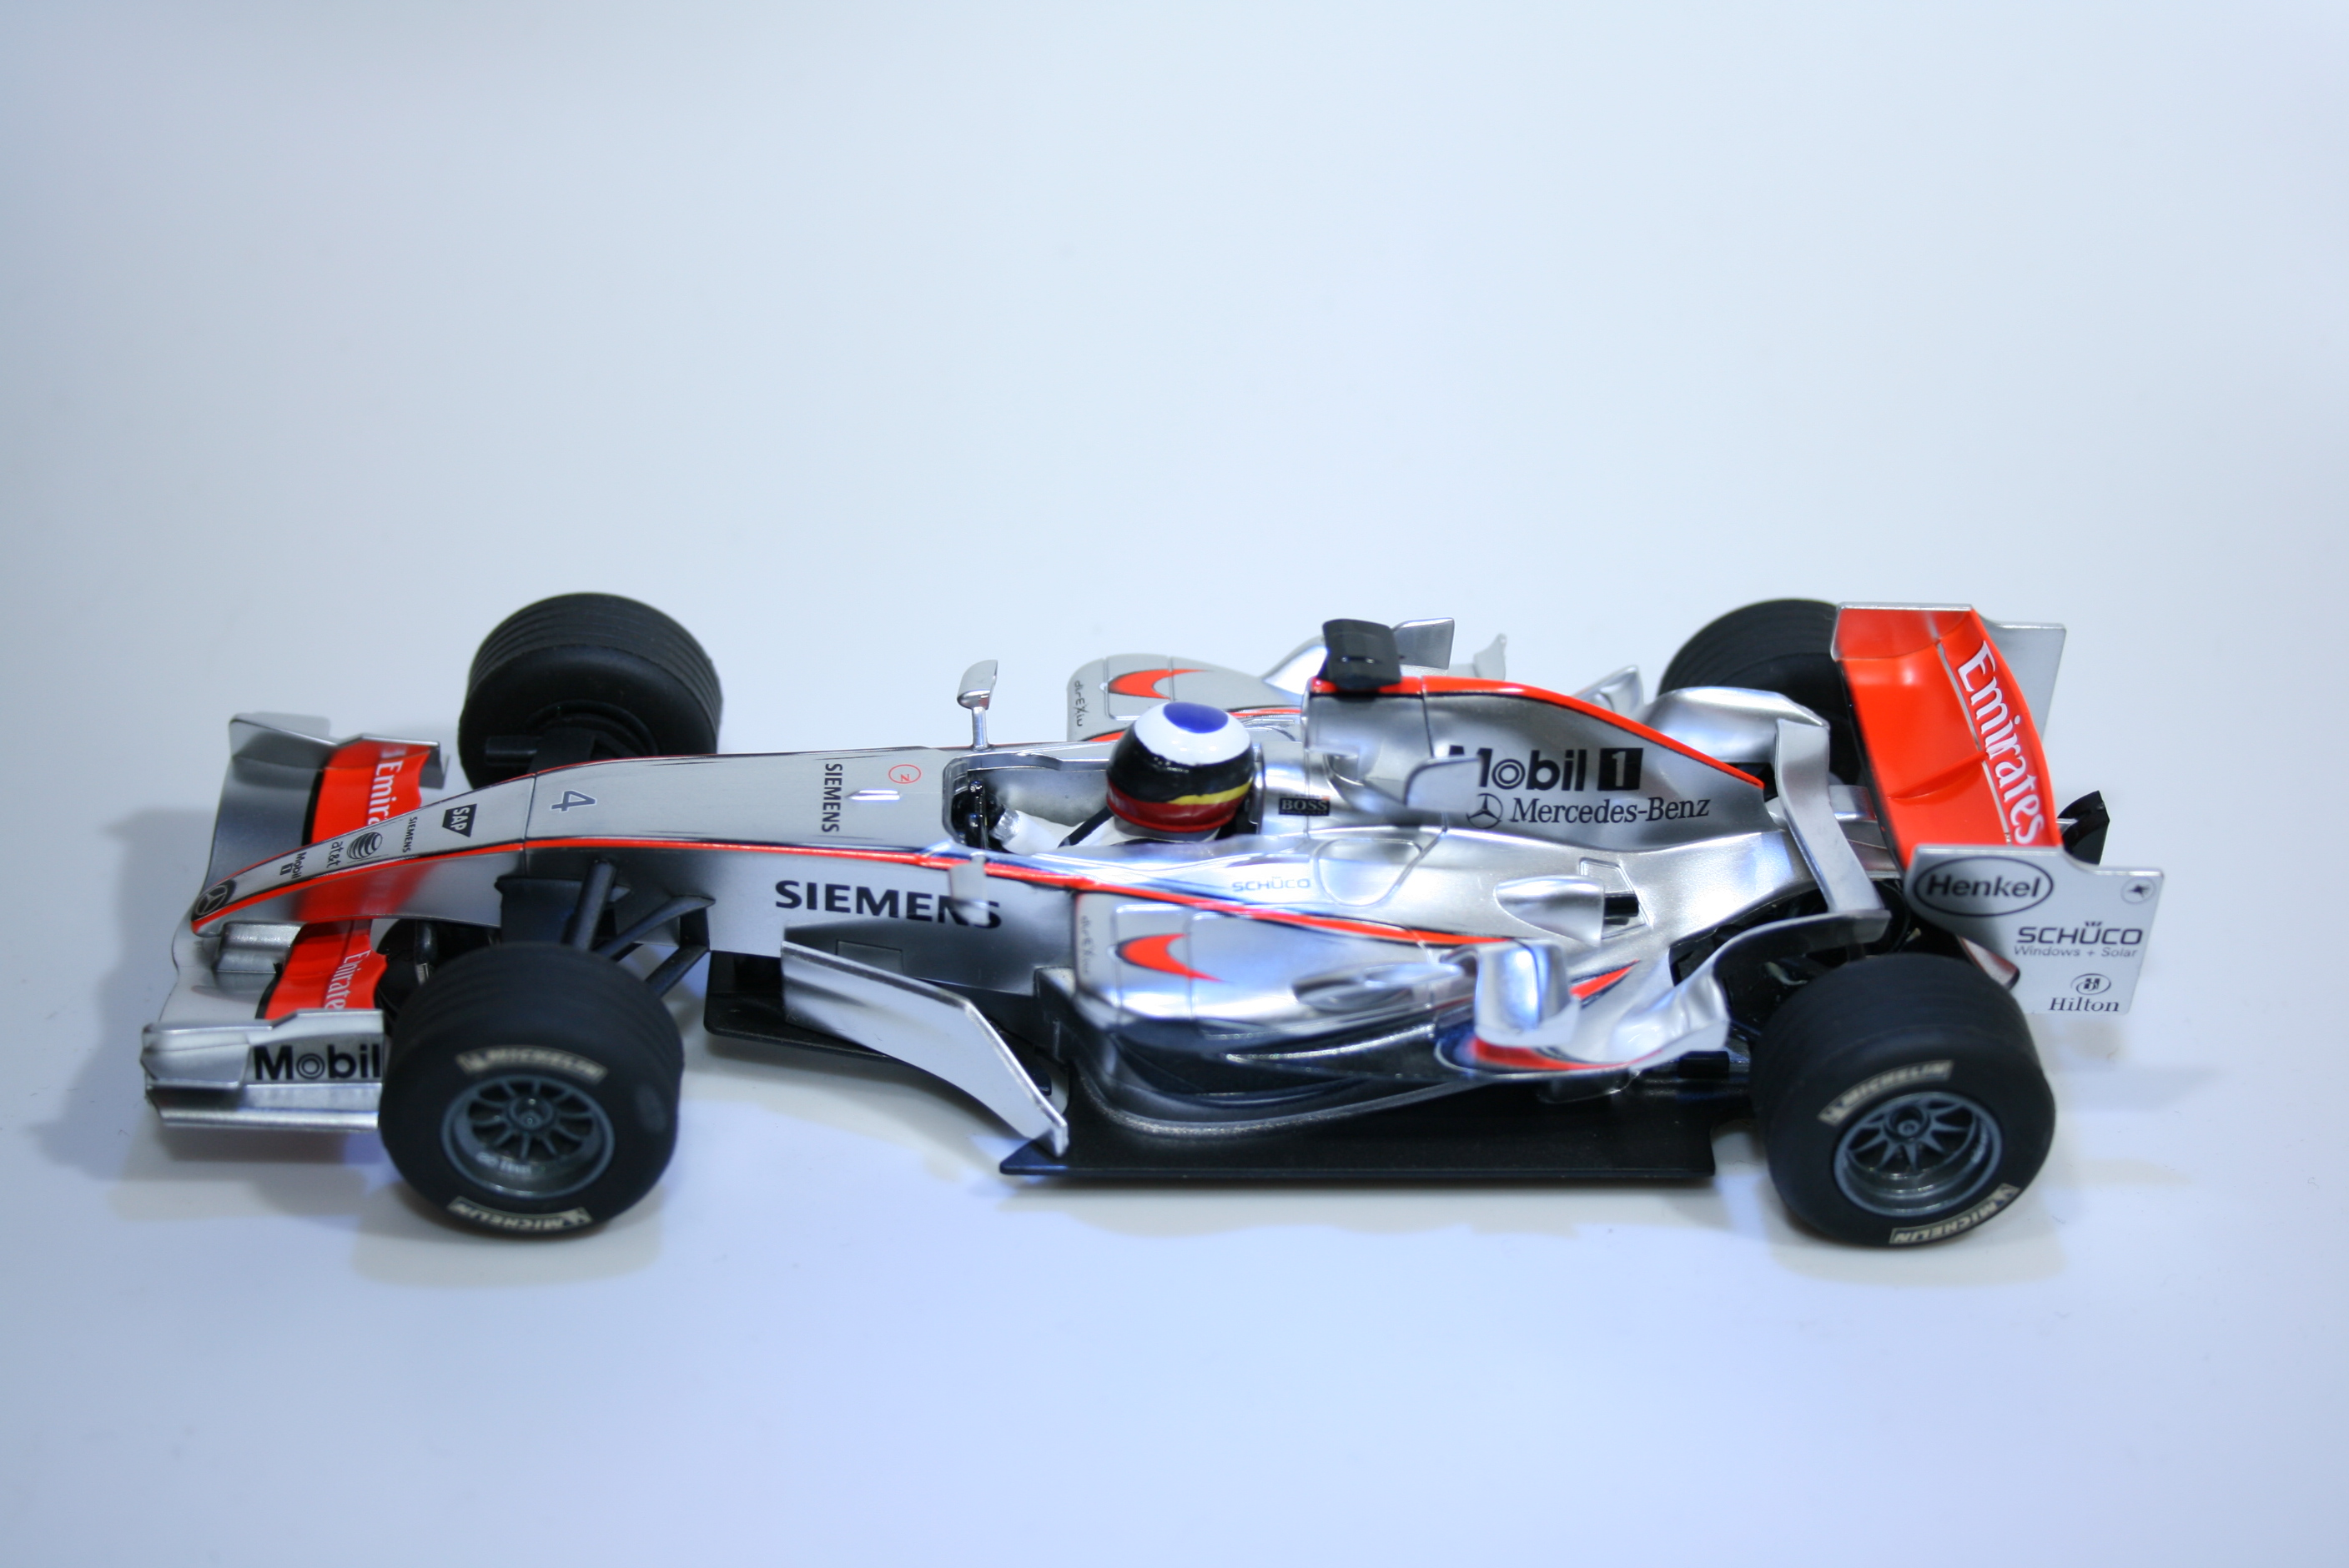 357 Mclaren MP4/21 2007 P De La Rosa Scalextric C2813 2007 Boxed